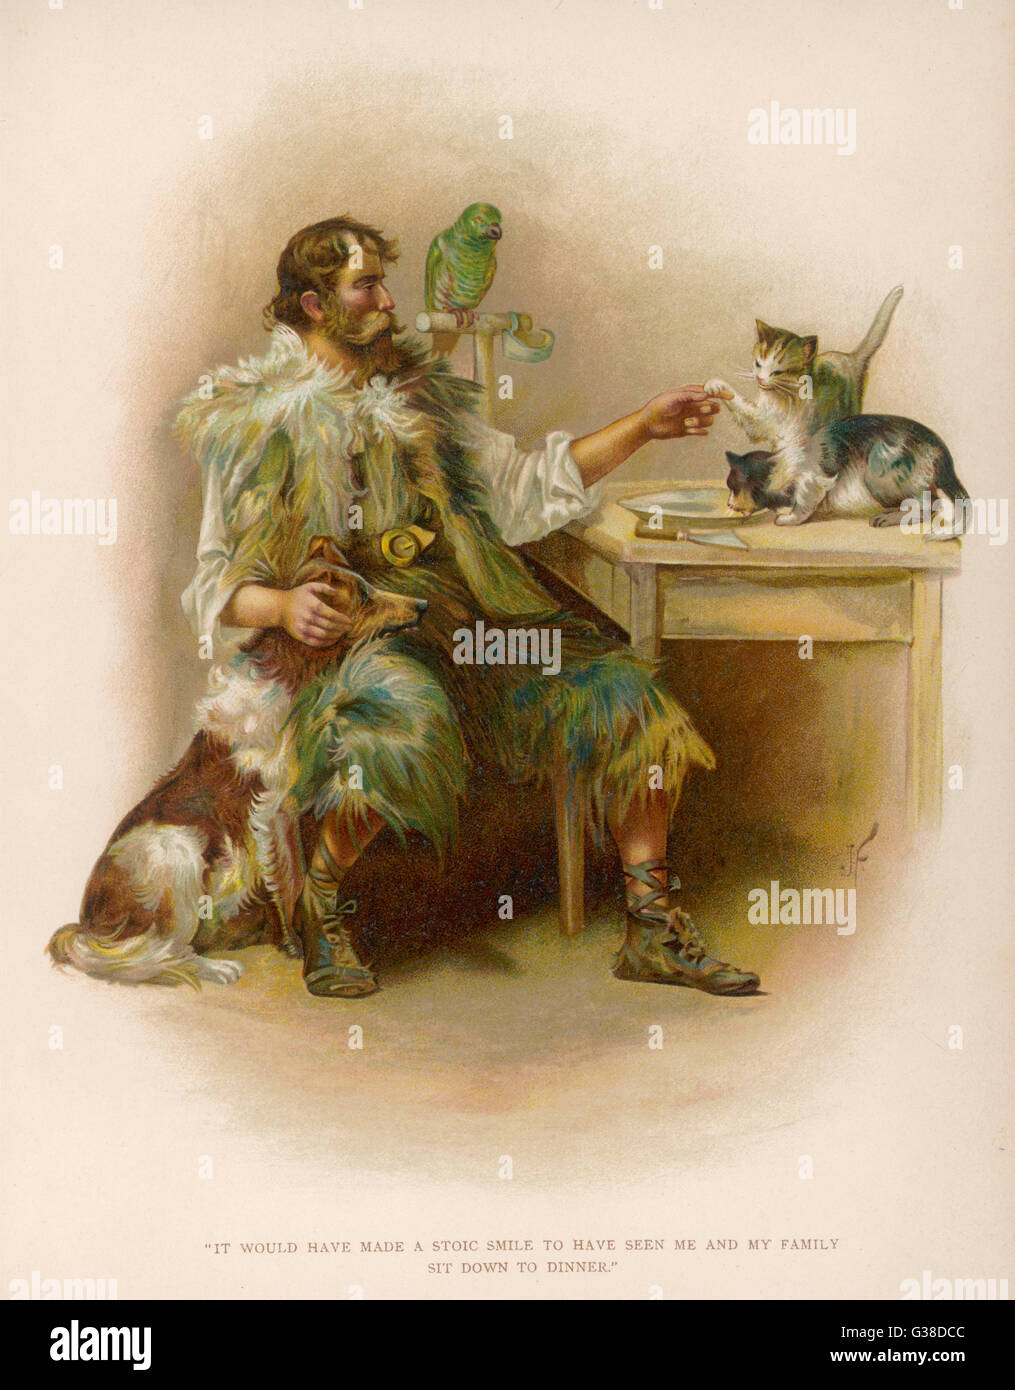 Crusoe with his 'family' of  domesticated animals.         Date: First published: 1719 - Stock Image